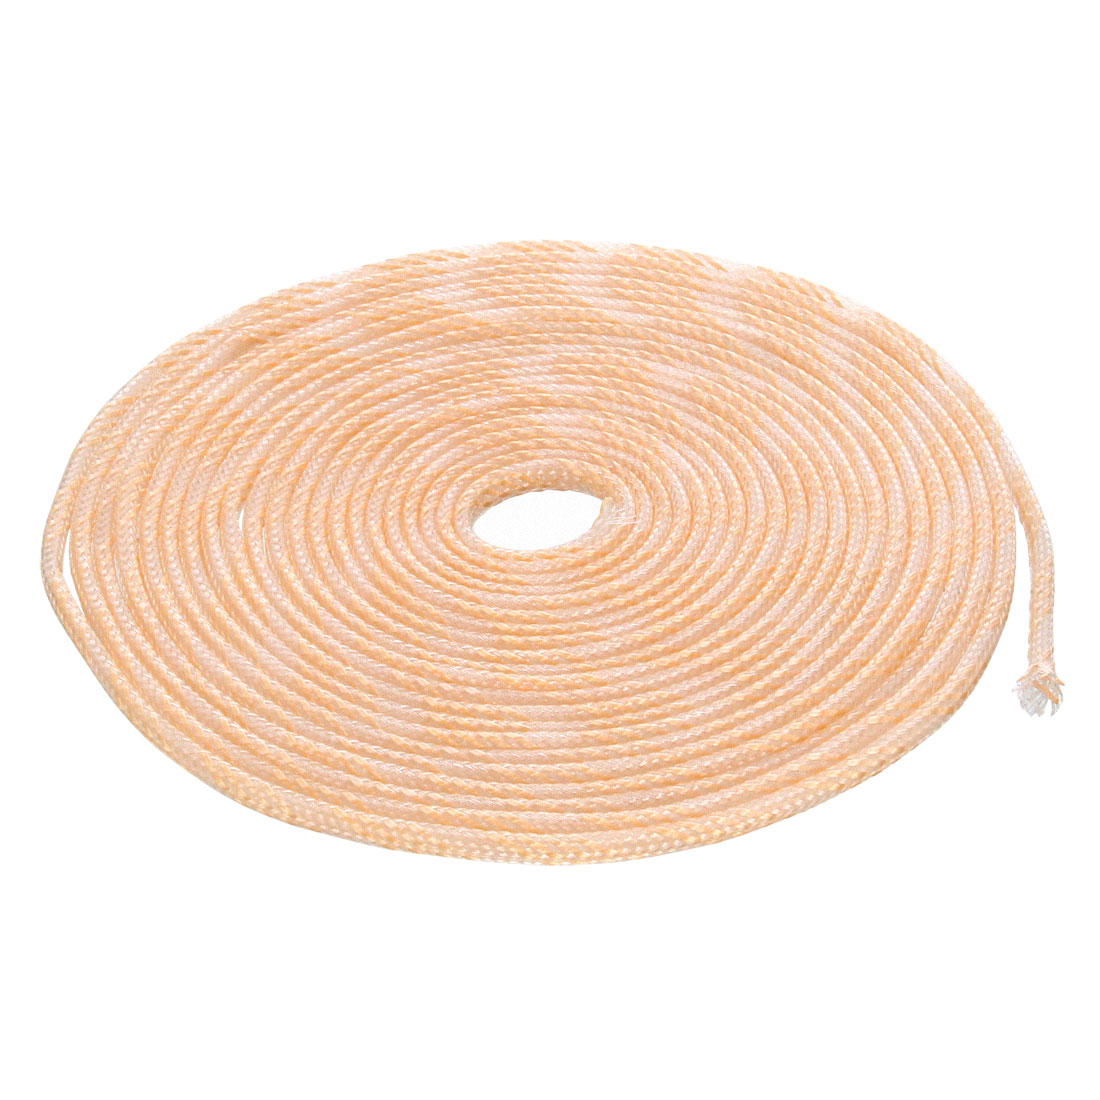 6mm Dia Tight Braided PET Expandable Sleeving Cable Wrap Sheath Transparent Orange 5M Length